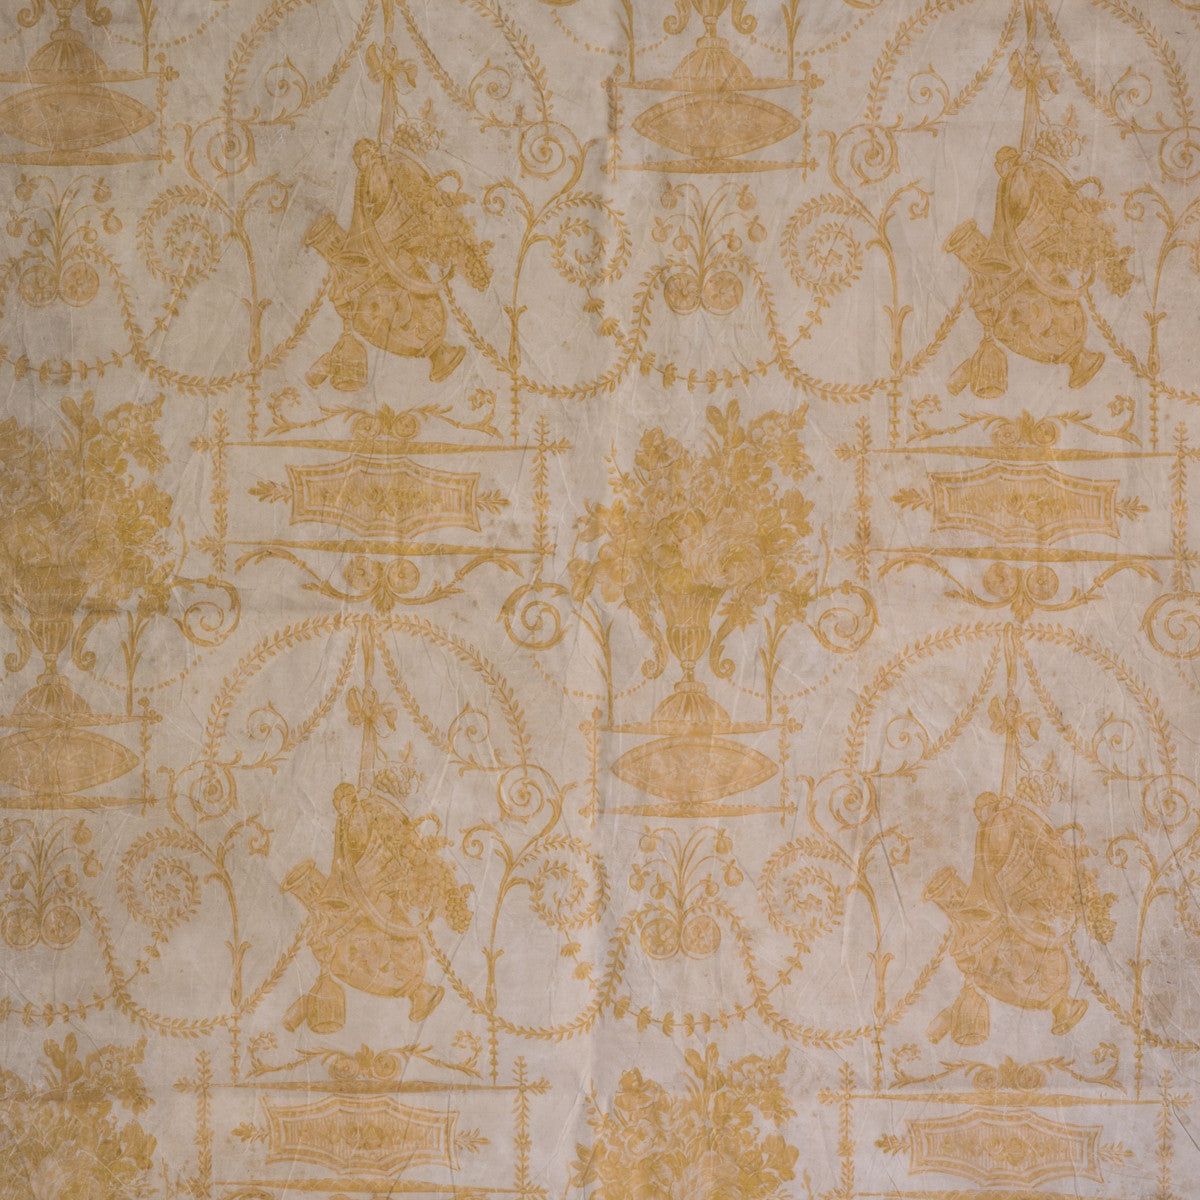 Lovecup French Quarter Yellow Wallpaper, Set of 2 rolls L824